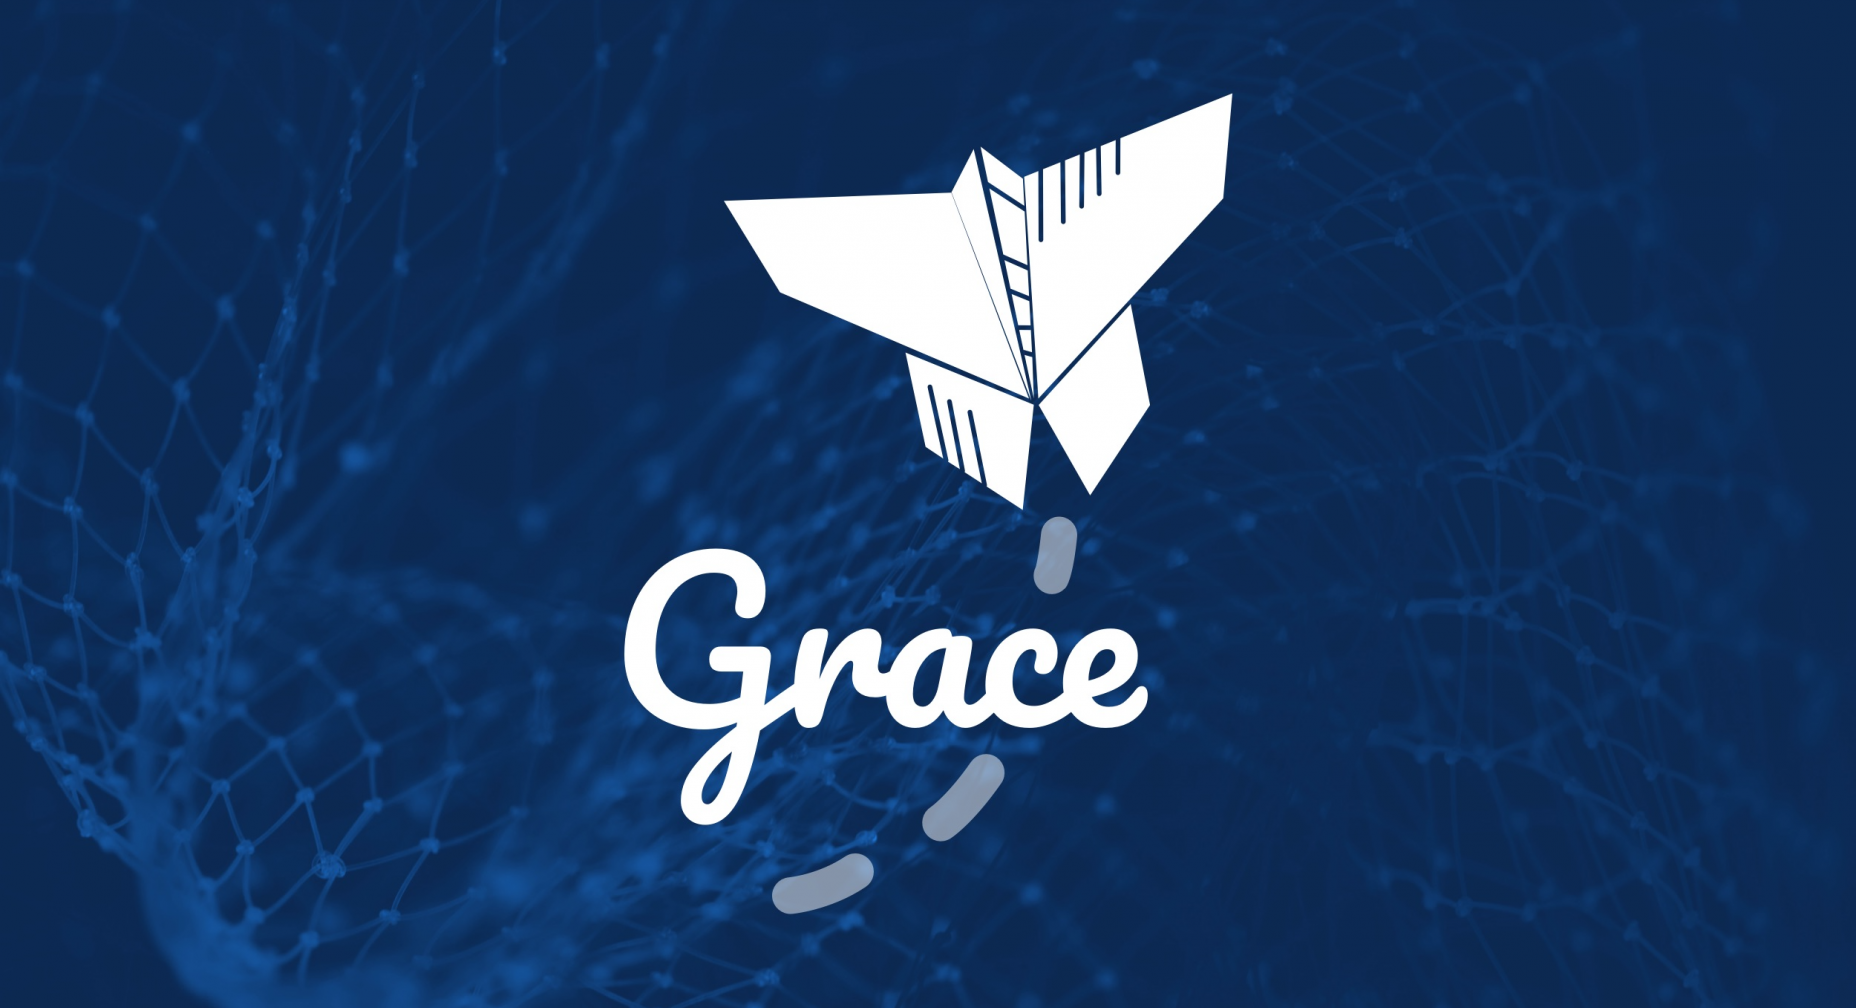 GRACE website